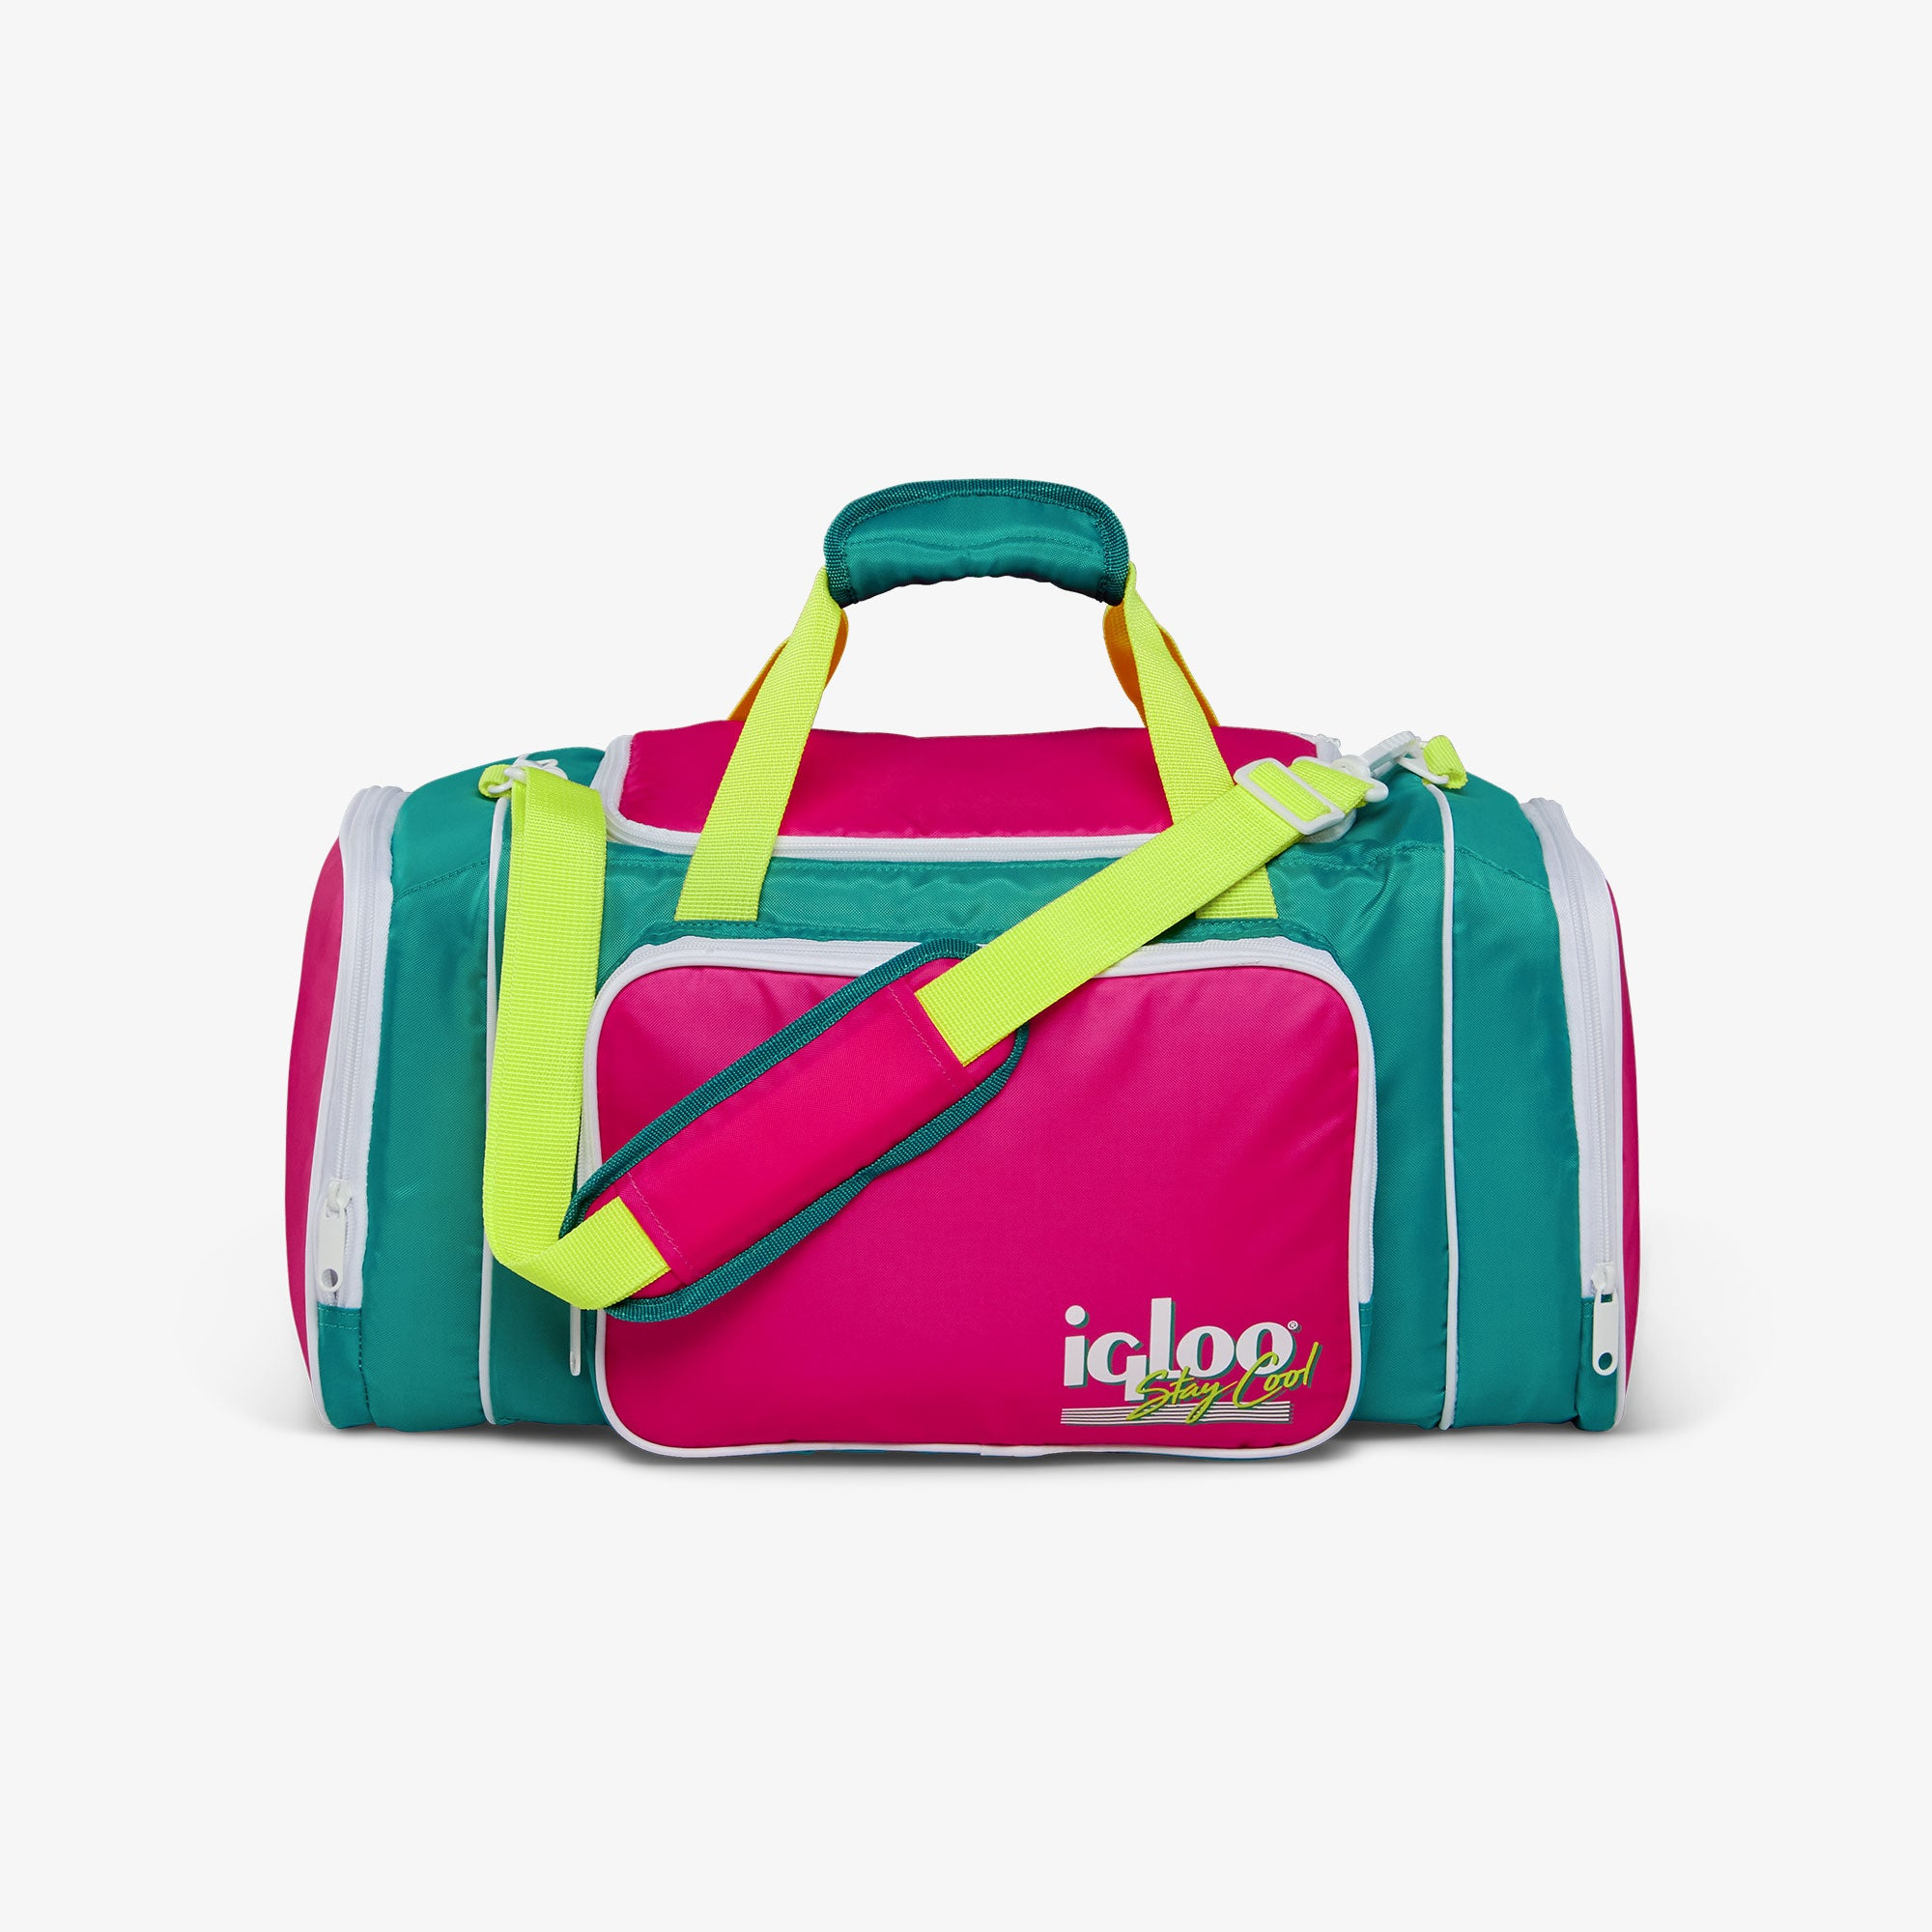 Front View | Retro Duffel Bag Cooler